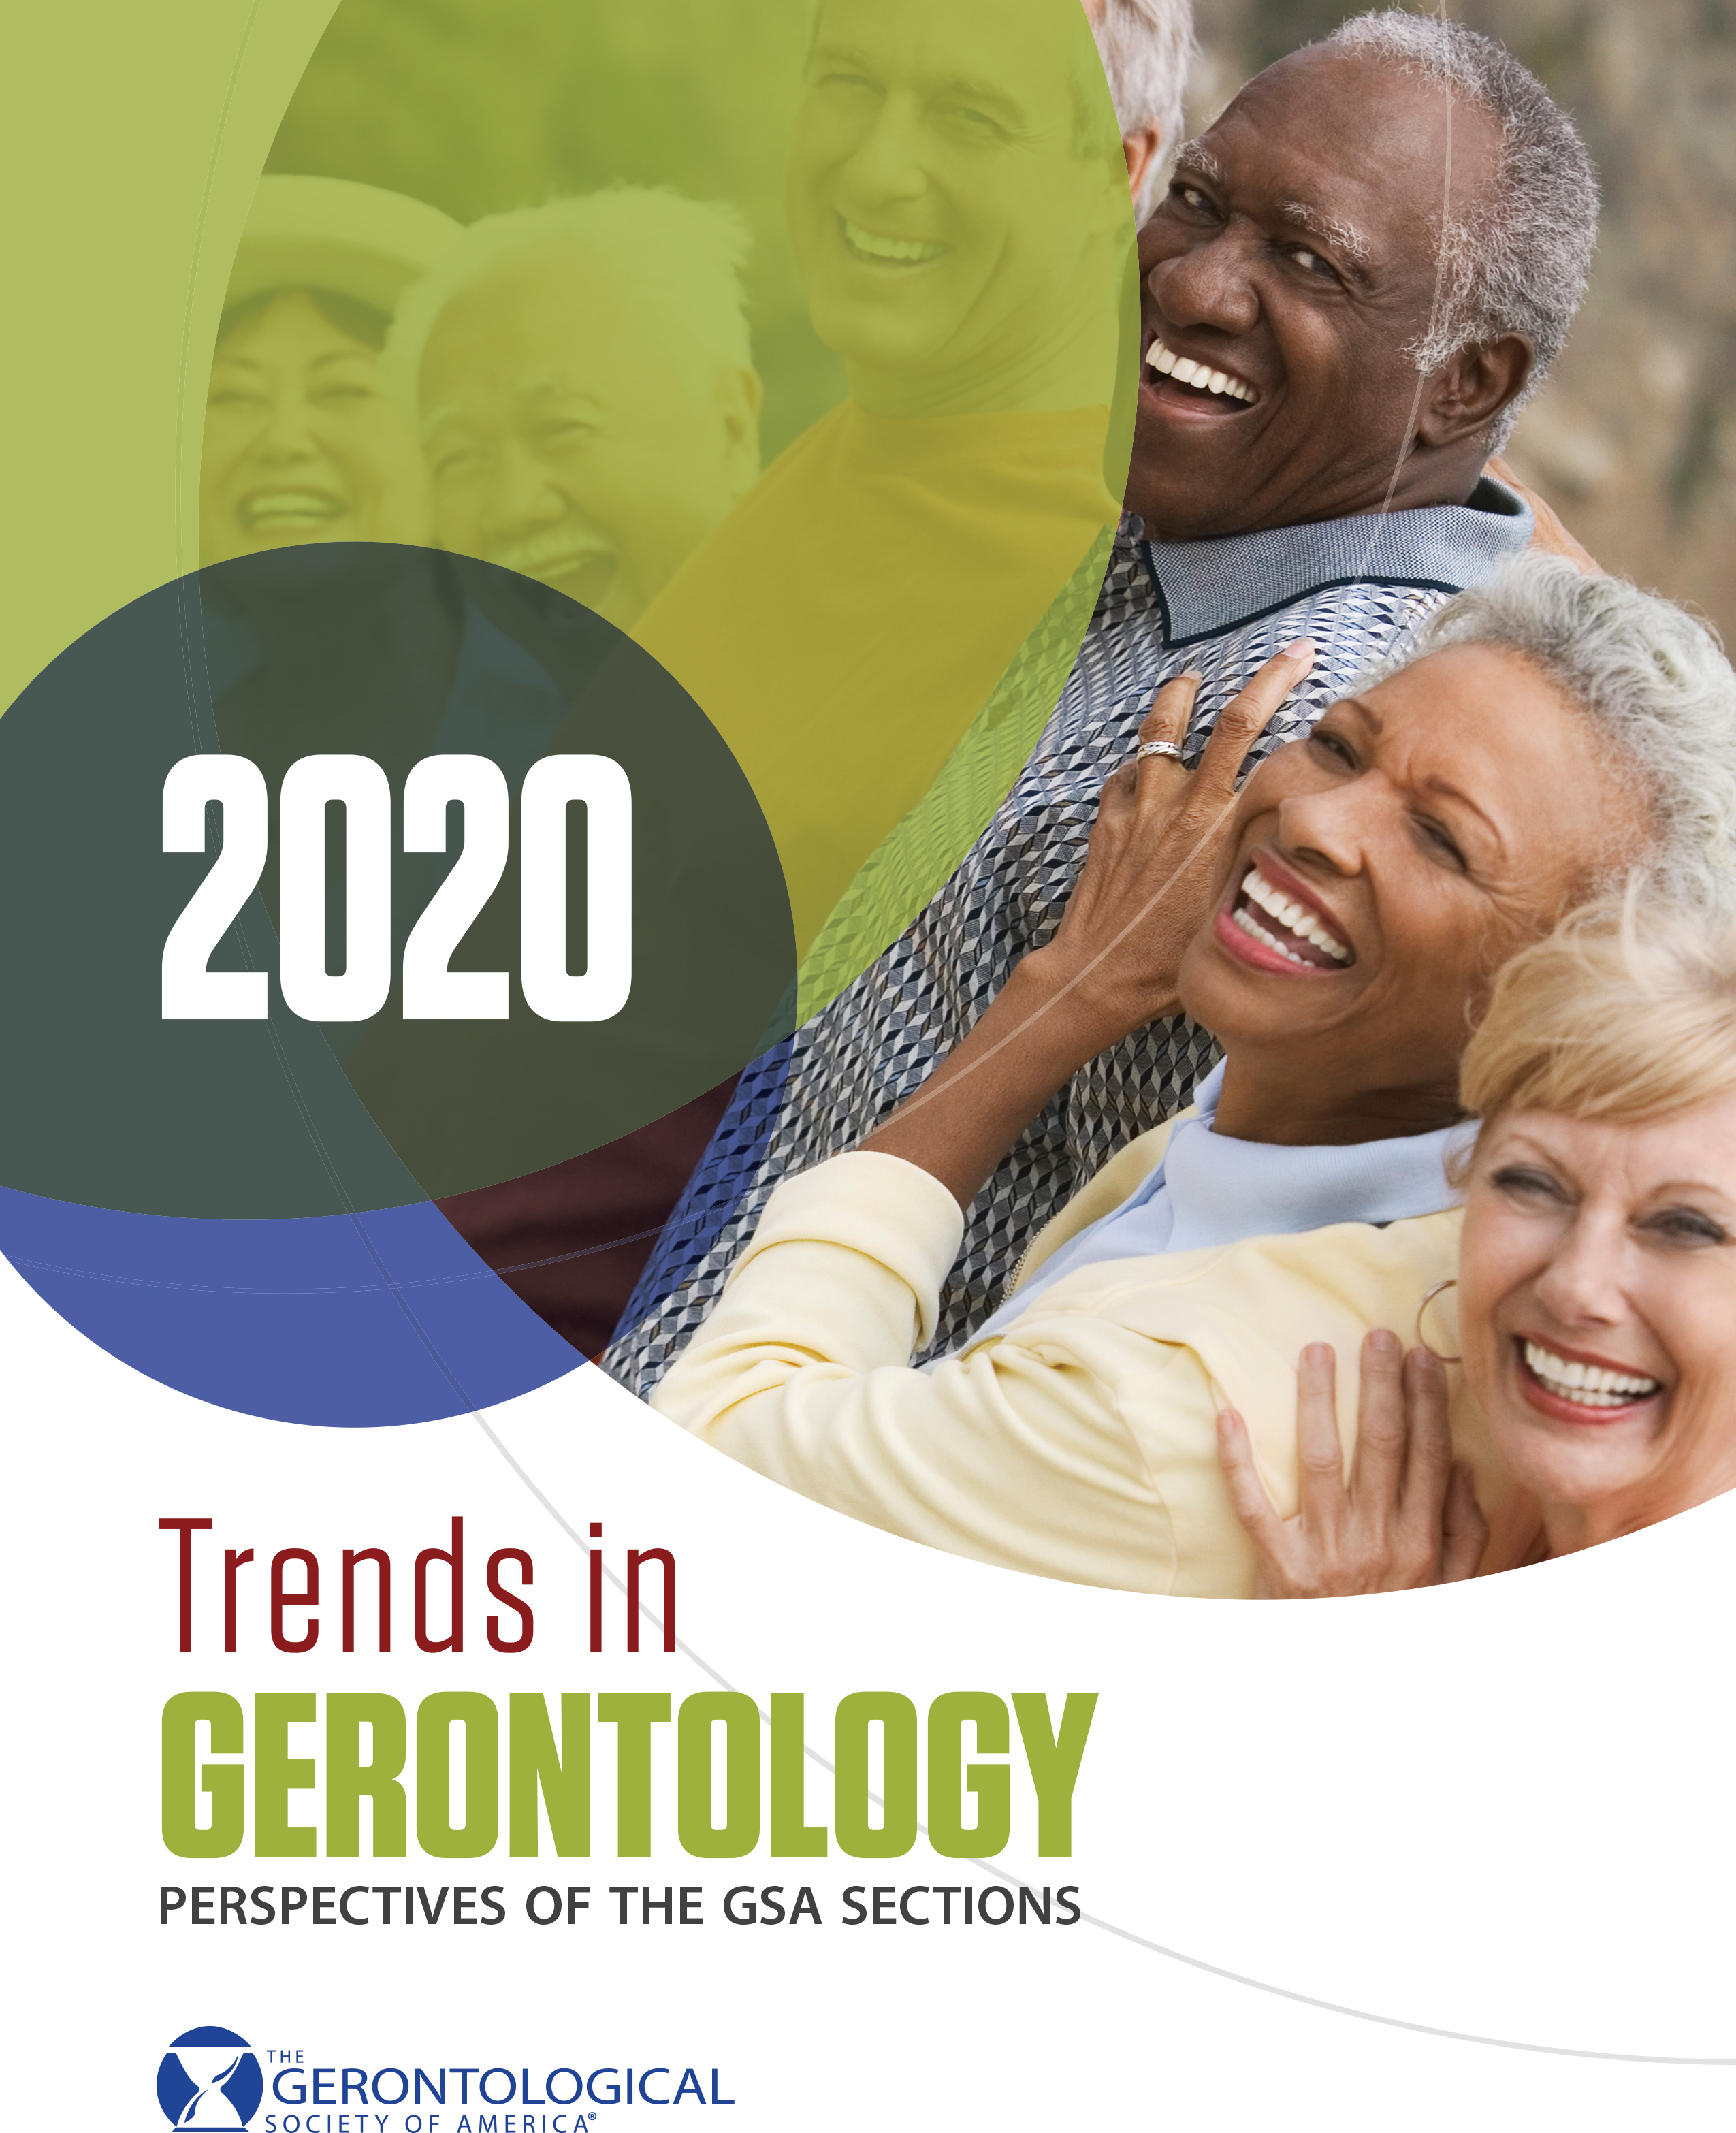 2020 Trends in Gerontology: Perspectives of the GSA Sections